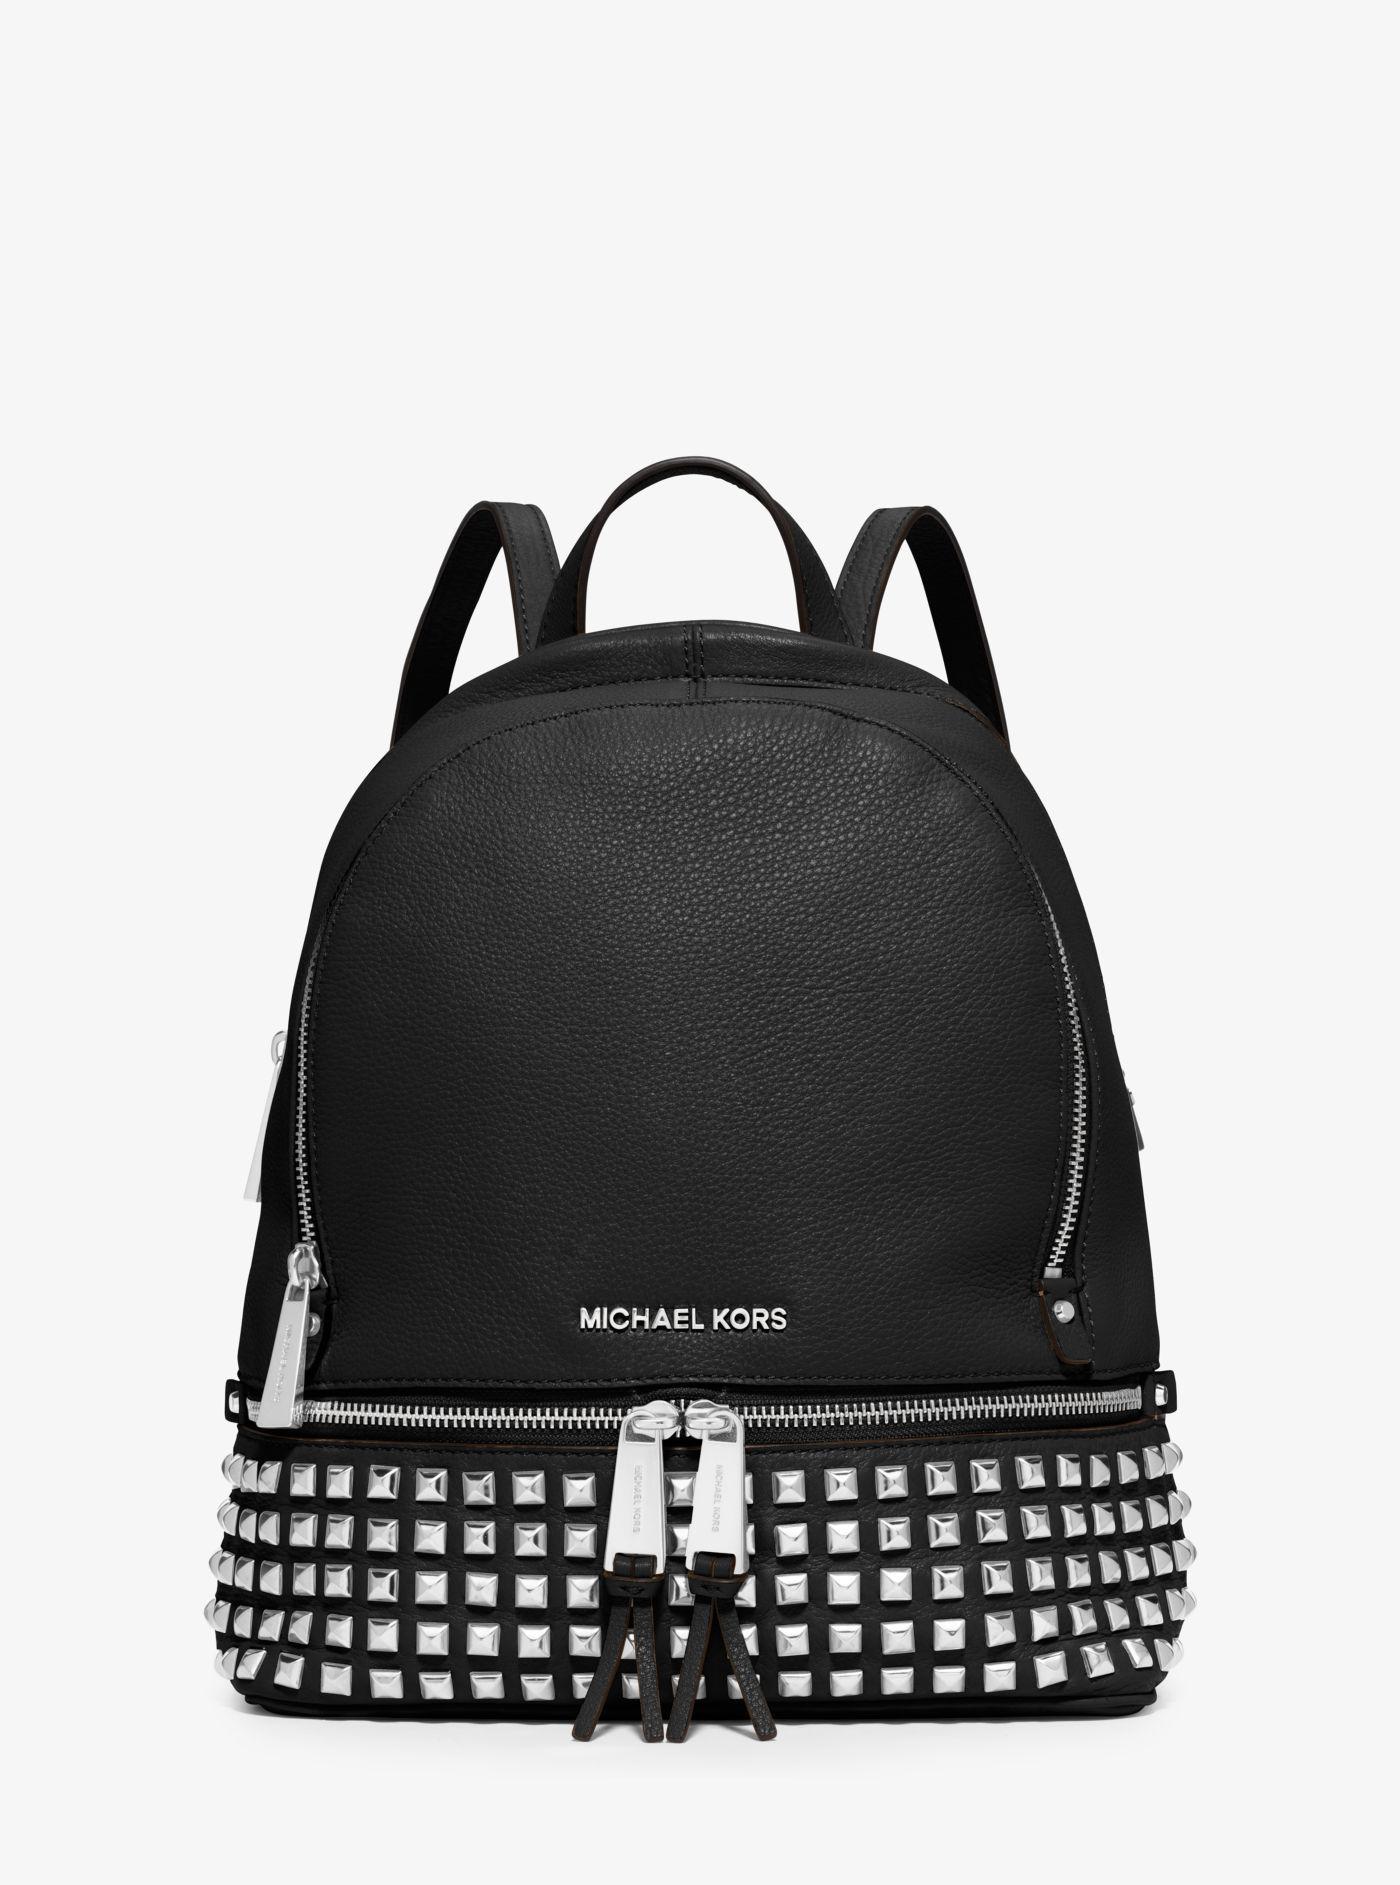 2b81d8295c56 Lyst - Michael Kors Rhea Small Studded Leather Backpack in Black ...